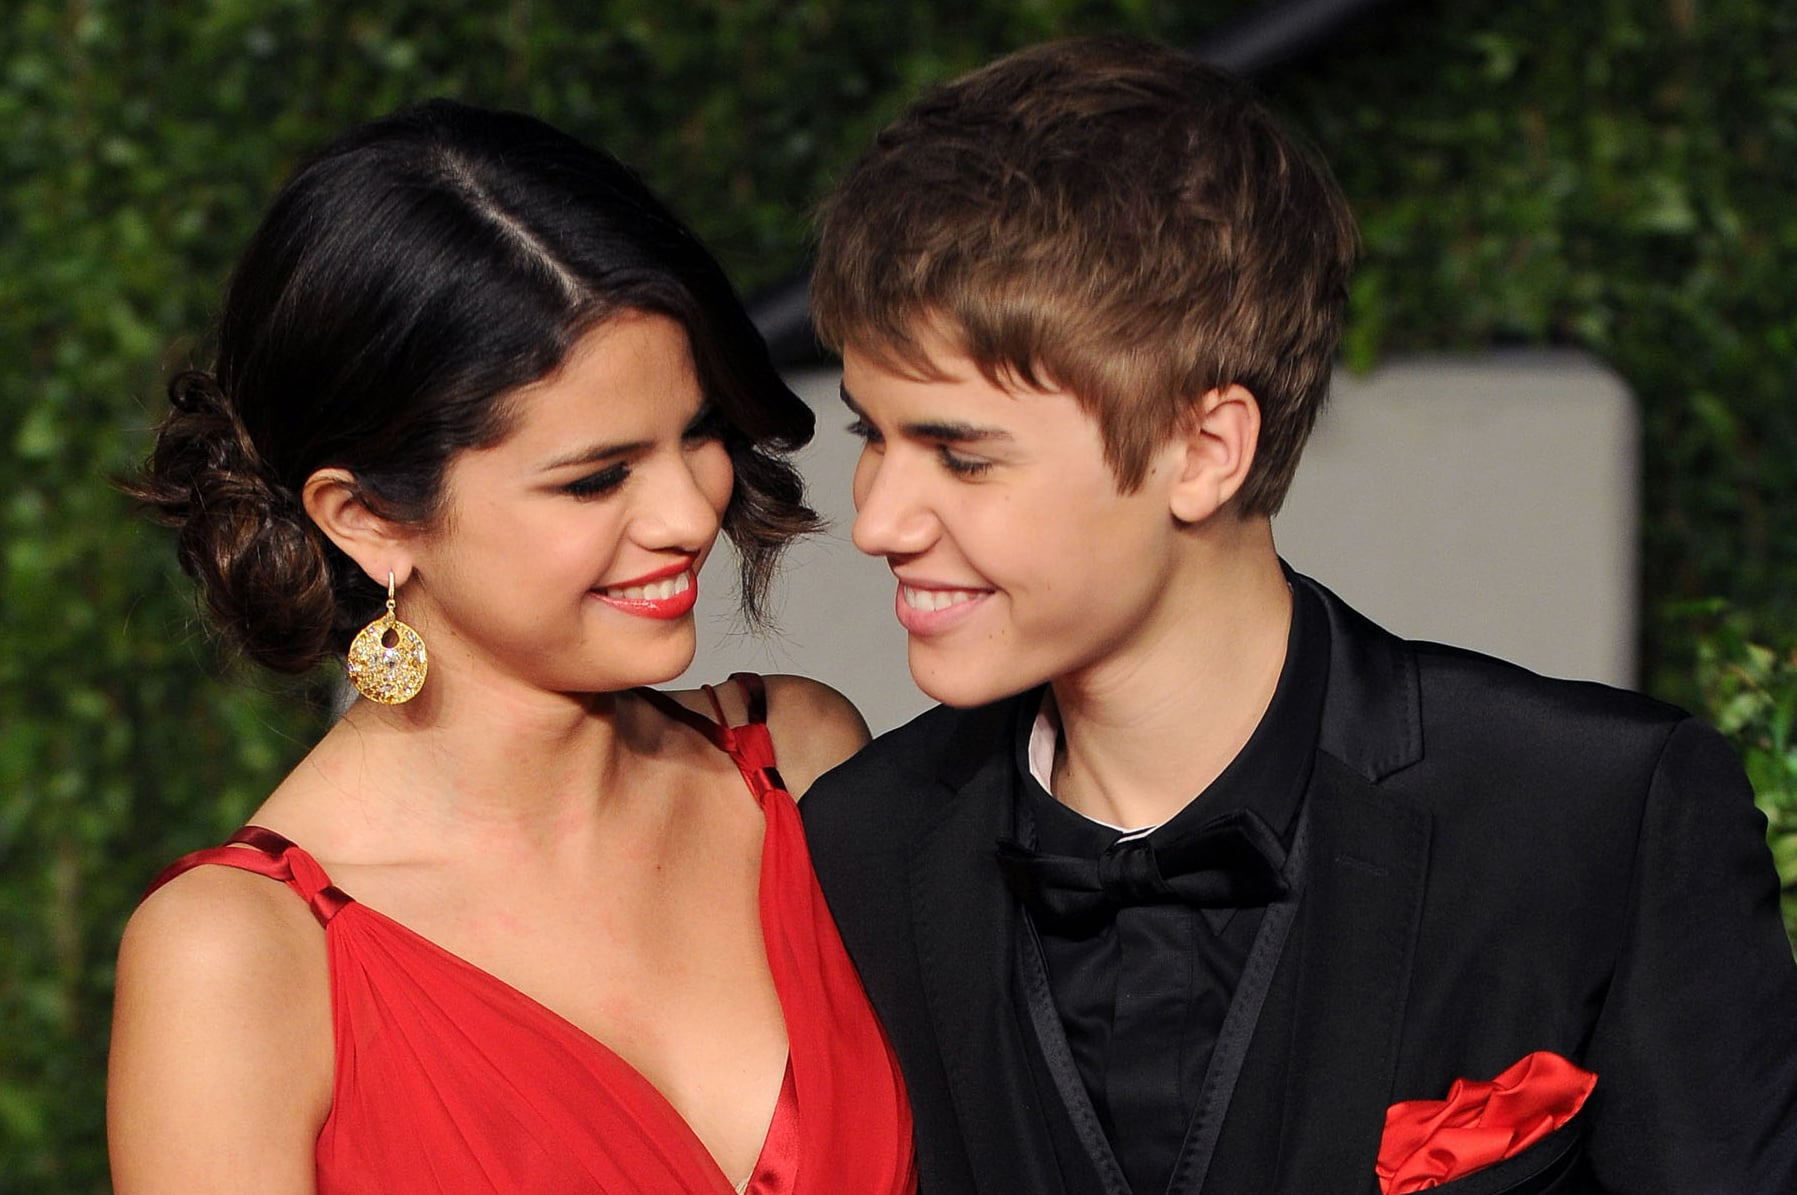 Justin bieber dating selena gomez confirmed